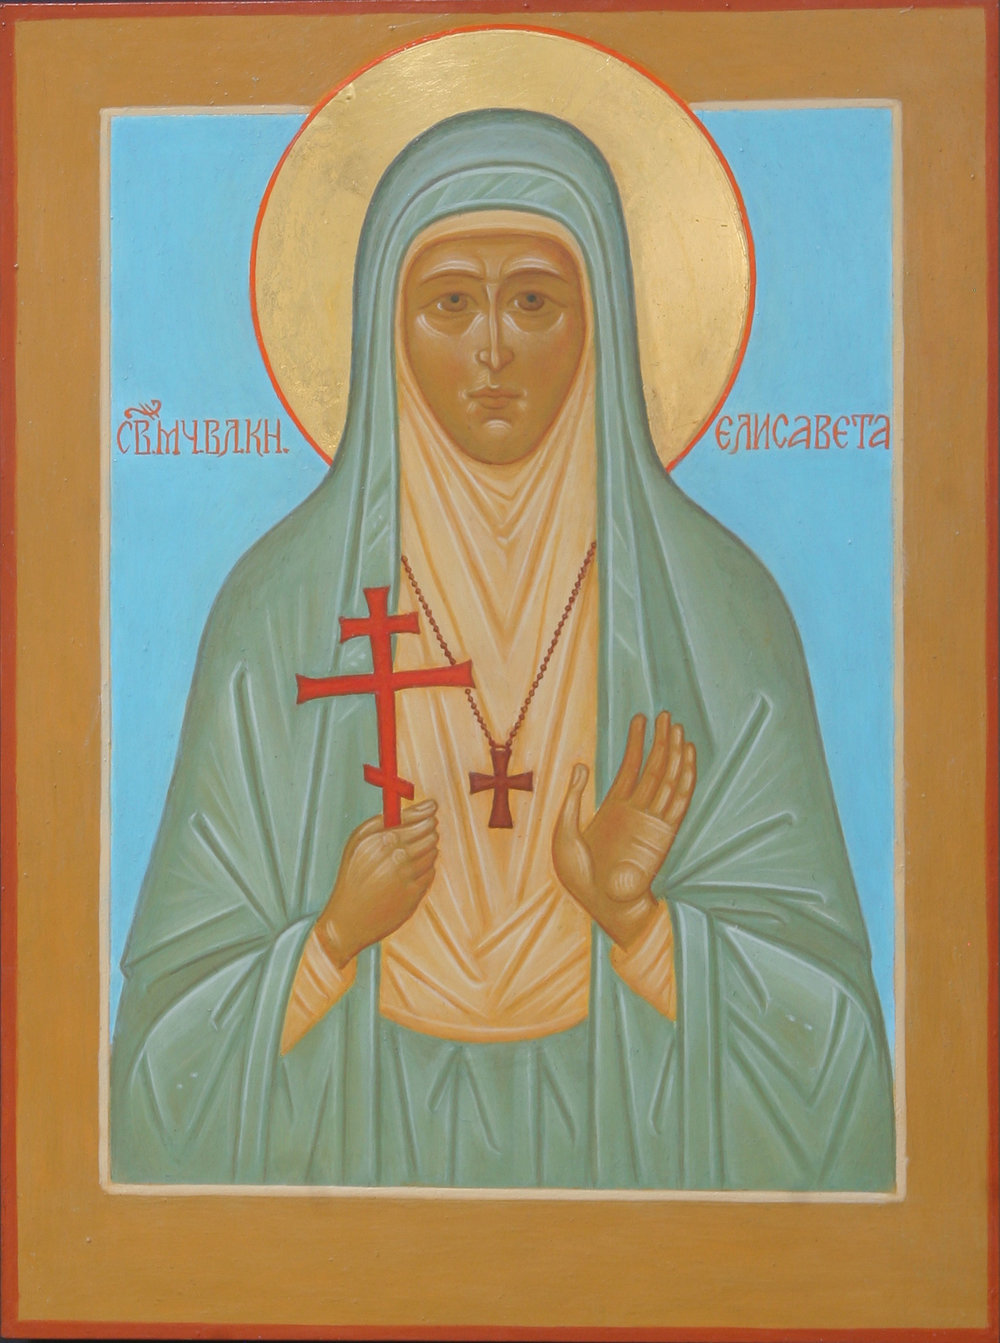 St. Elizabeth the Great Martyr